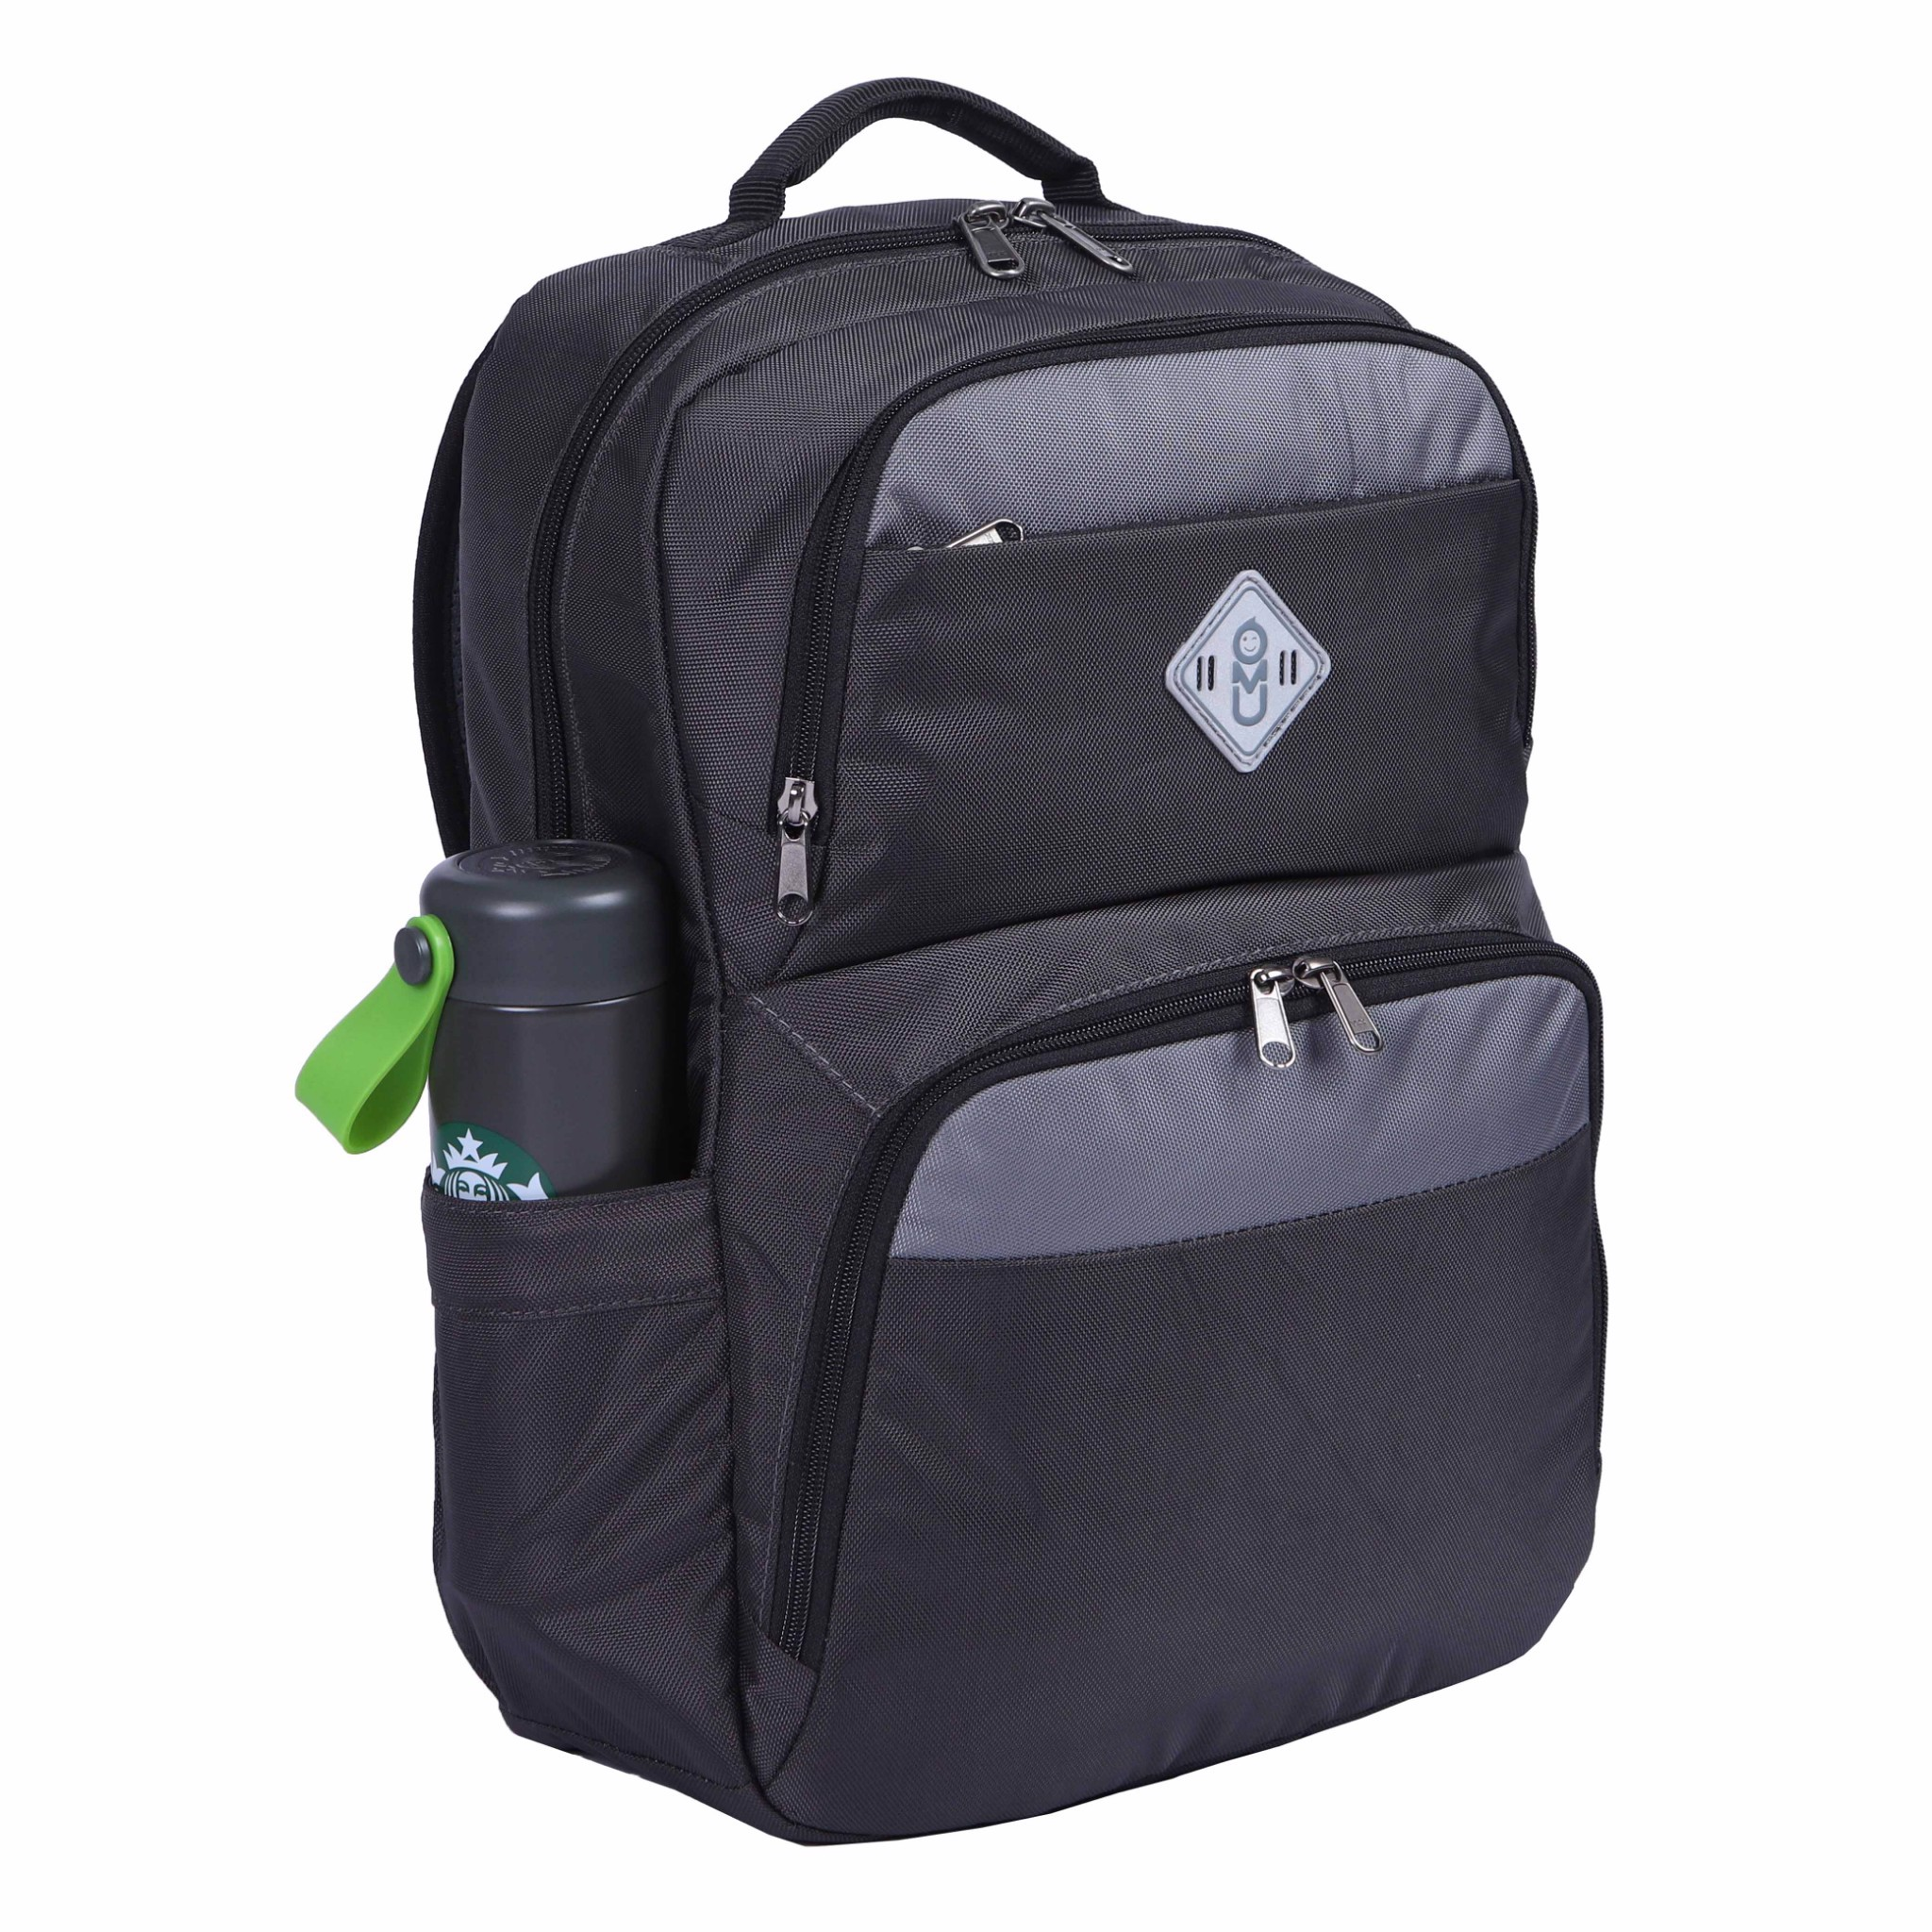 UMO DYNAMIC BackPack D.Grey- Balo Laptop Cao Cấp